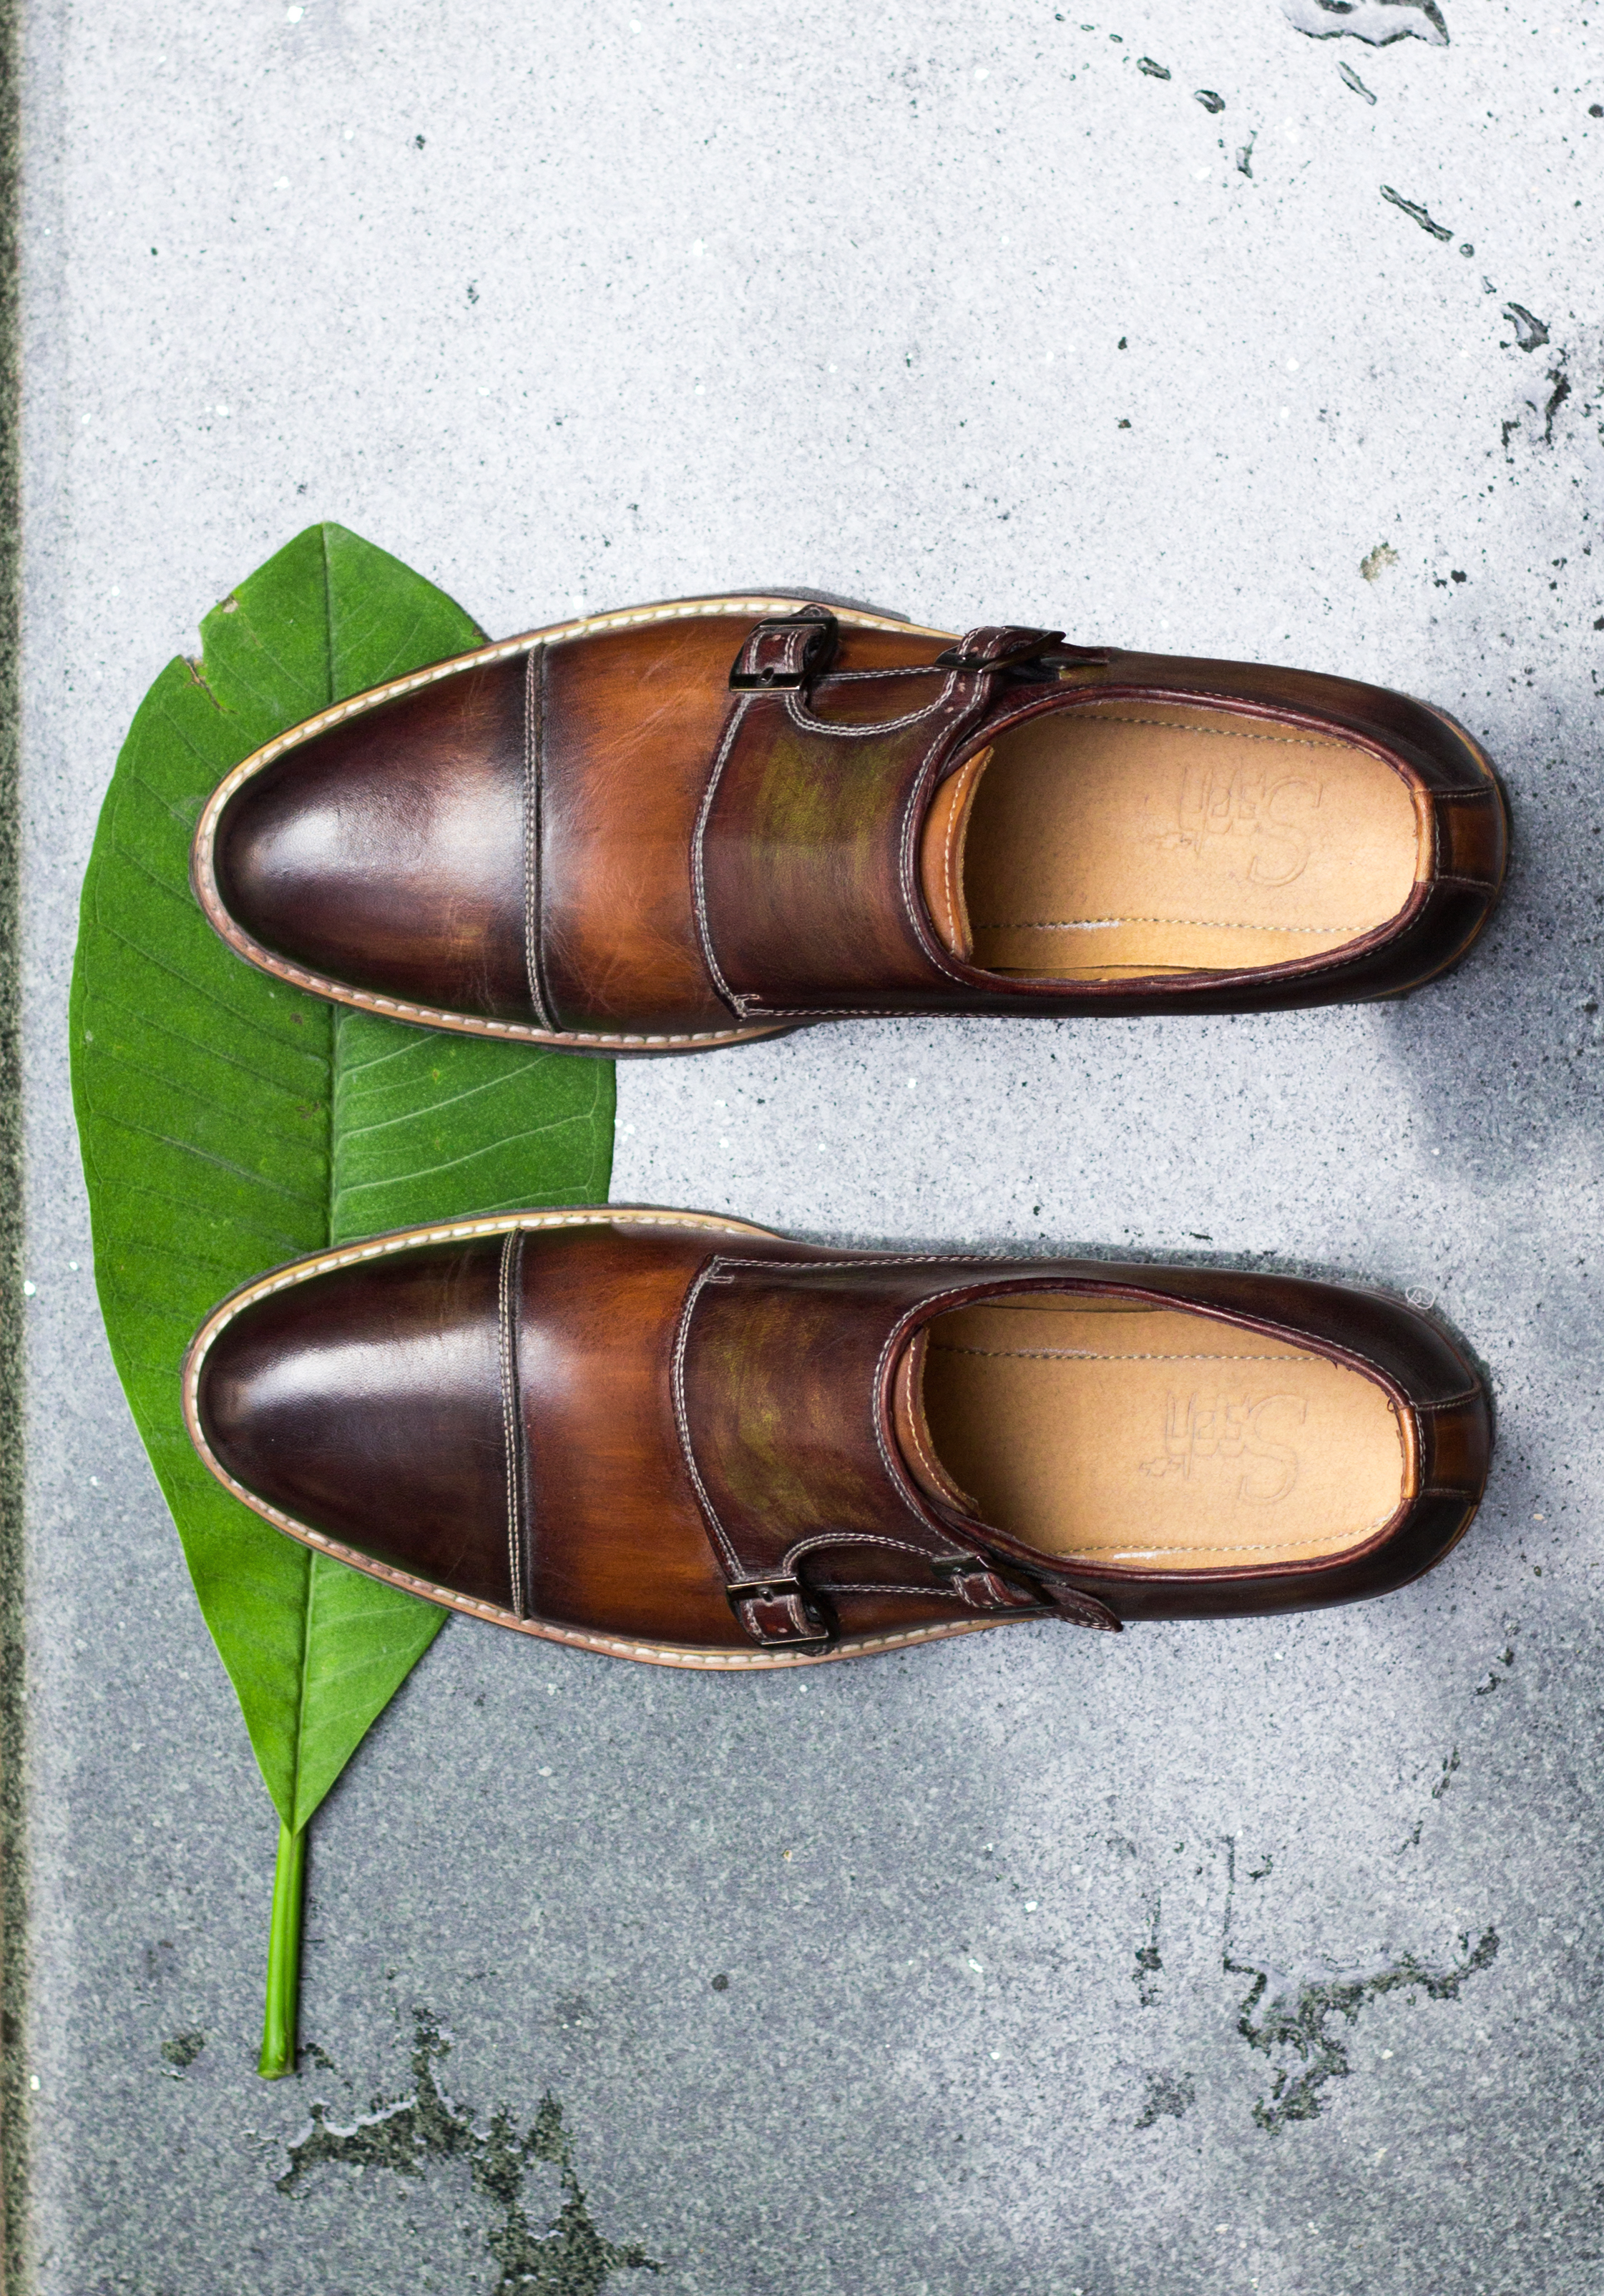 #7 The brown monkstrap - The monkstrap is a classical shoe,more formal than a derby but less formal than a full oxford.Sartorial boldness,modernity, and fashion forwardness.